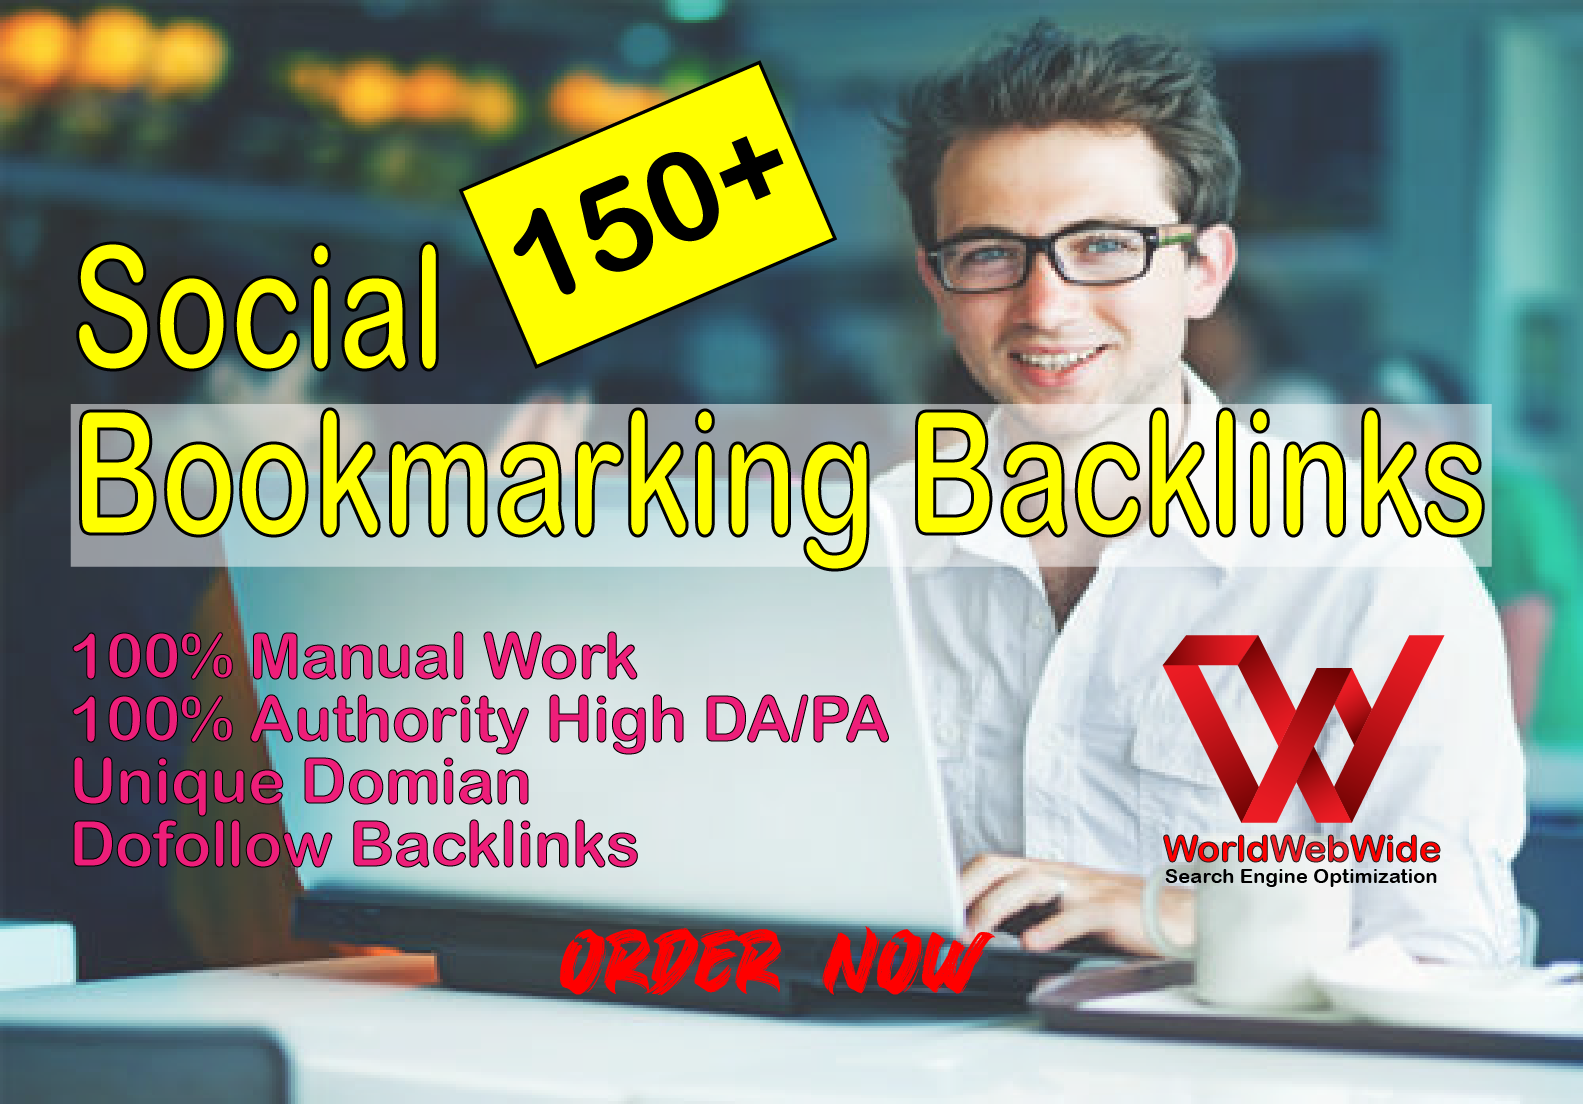 Create 150+ Social Bookmarking Backlinks High Authority Site to Boost Your Google Ranking